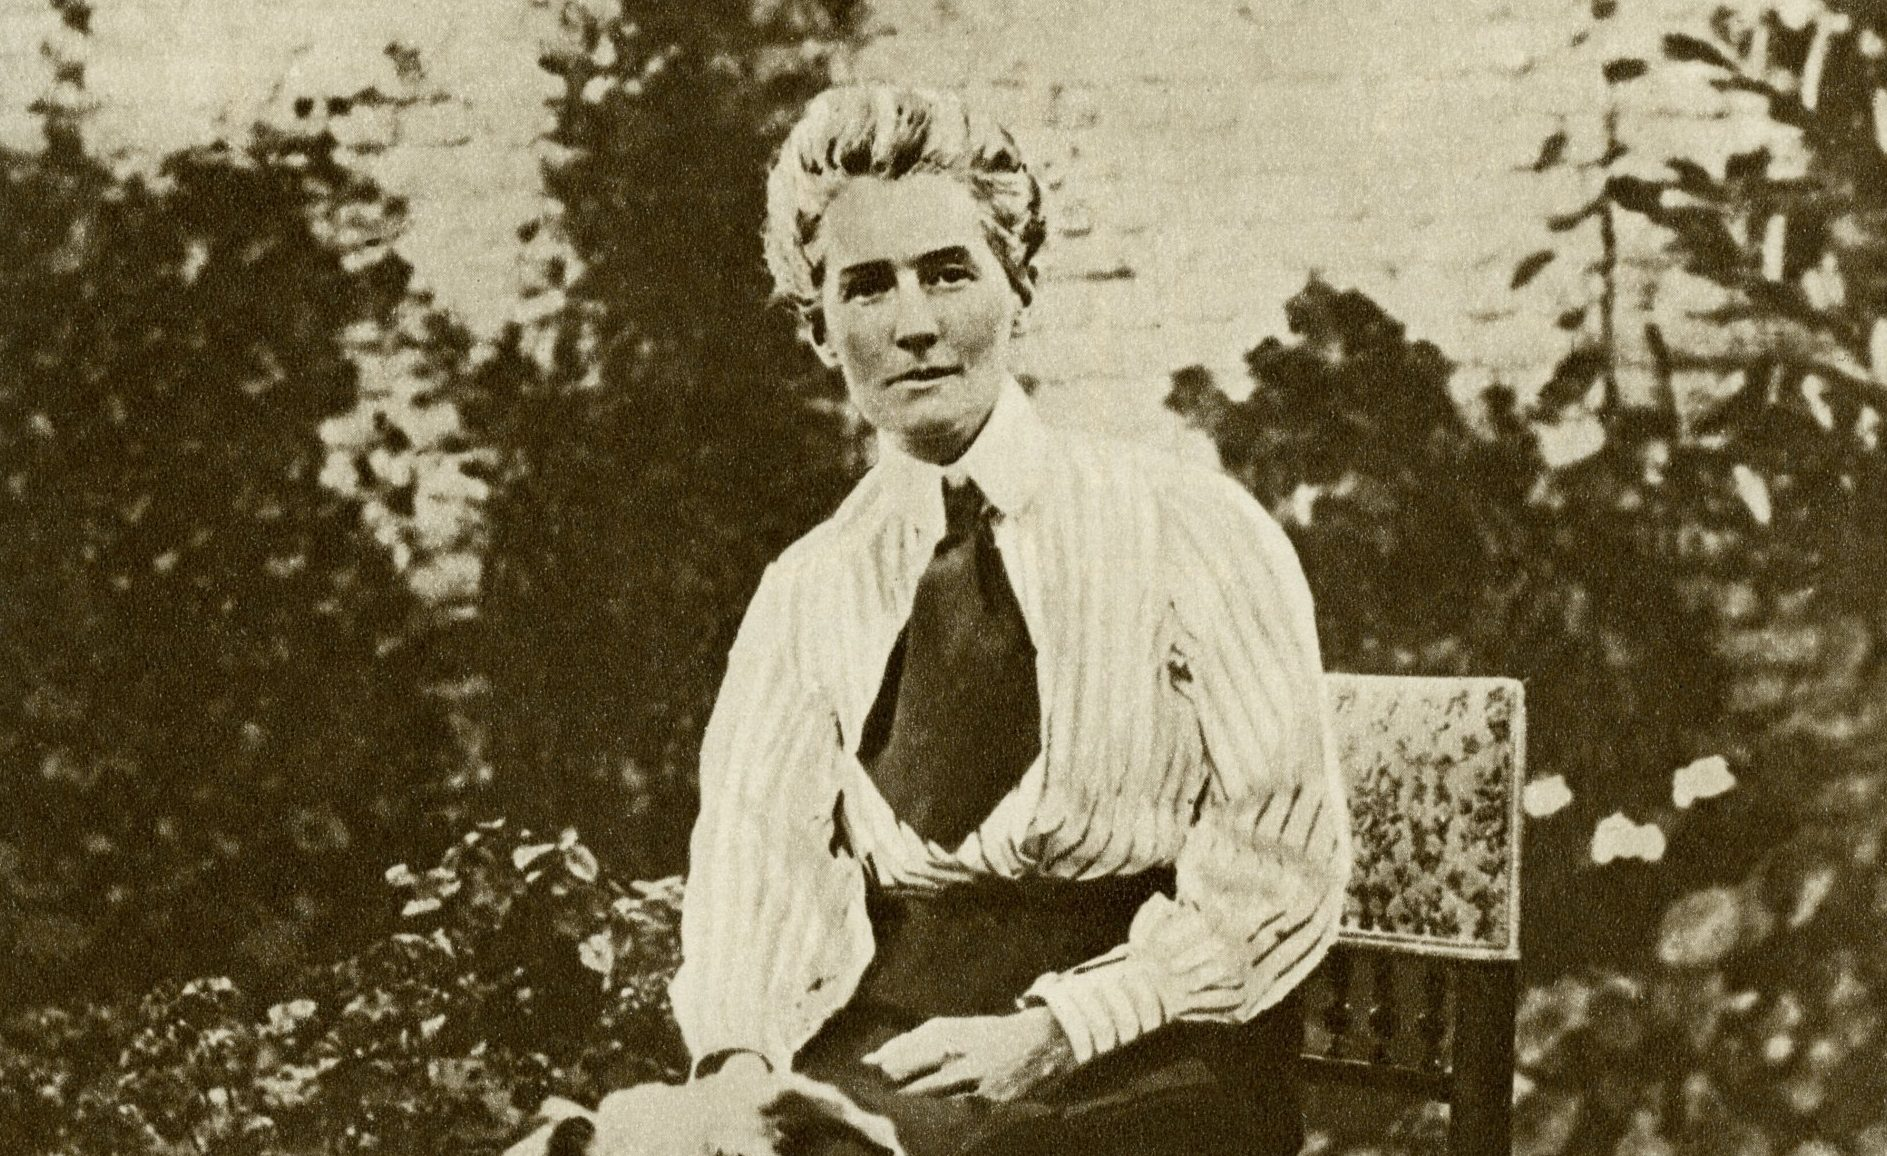 Edith Cavell (4 December 1865 ?? 12 October 1915), nurse during the First World War who saved the lives of soldiers in occupied Belgium, helping them escape across the border. Executed by the Germans for treason. Portrait taken before the war in her garden with her two dogs. (Photo by Culture Club/Getty Images)